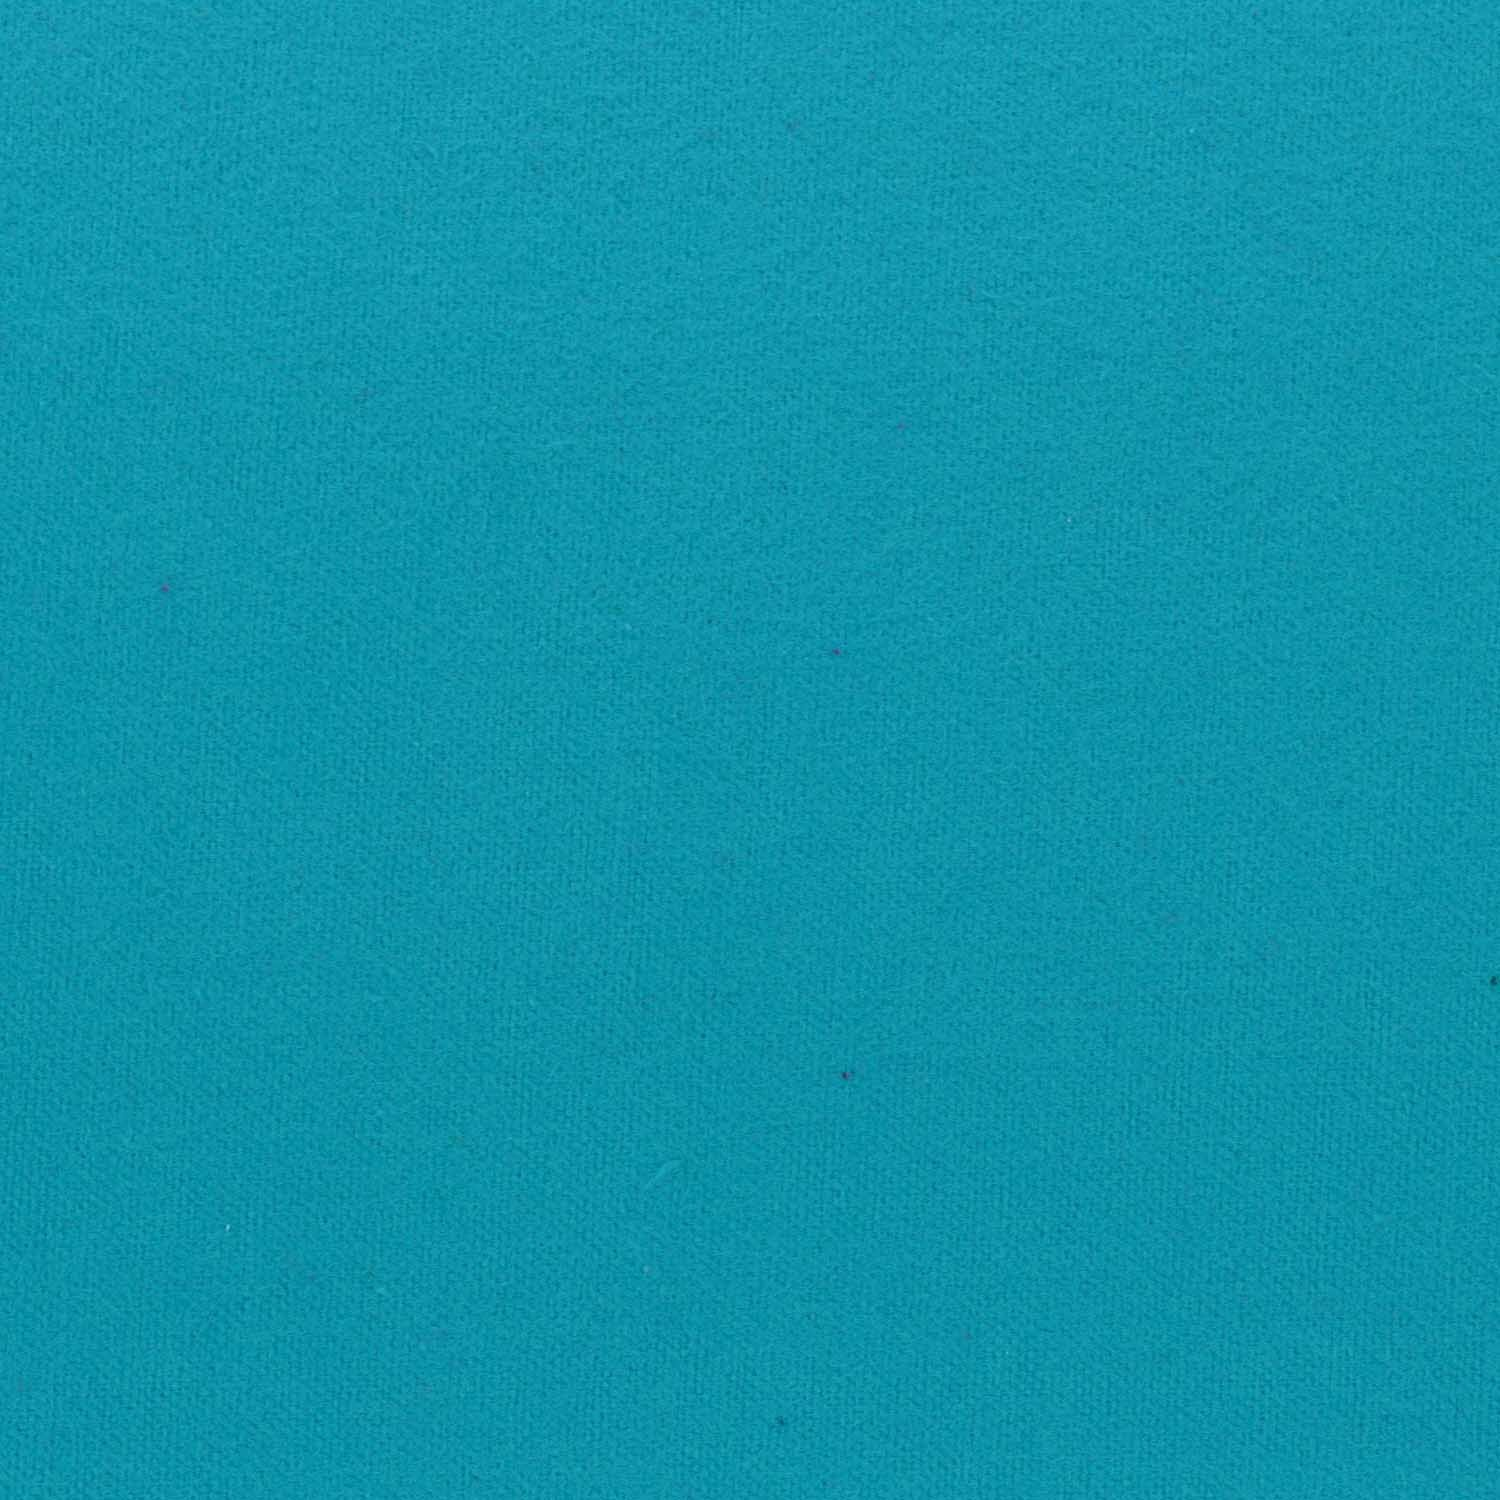 Fabriquilt Heavy Weight Flannel 15631 Turquoise